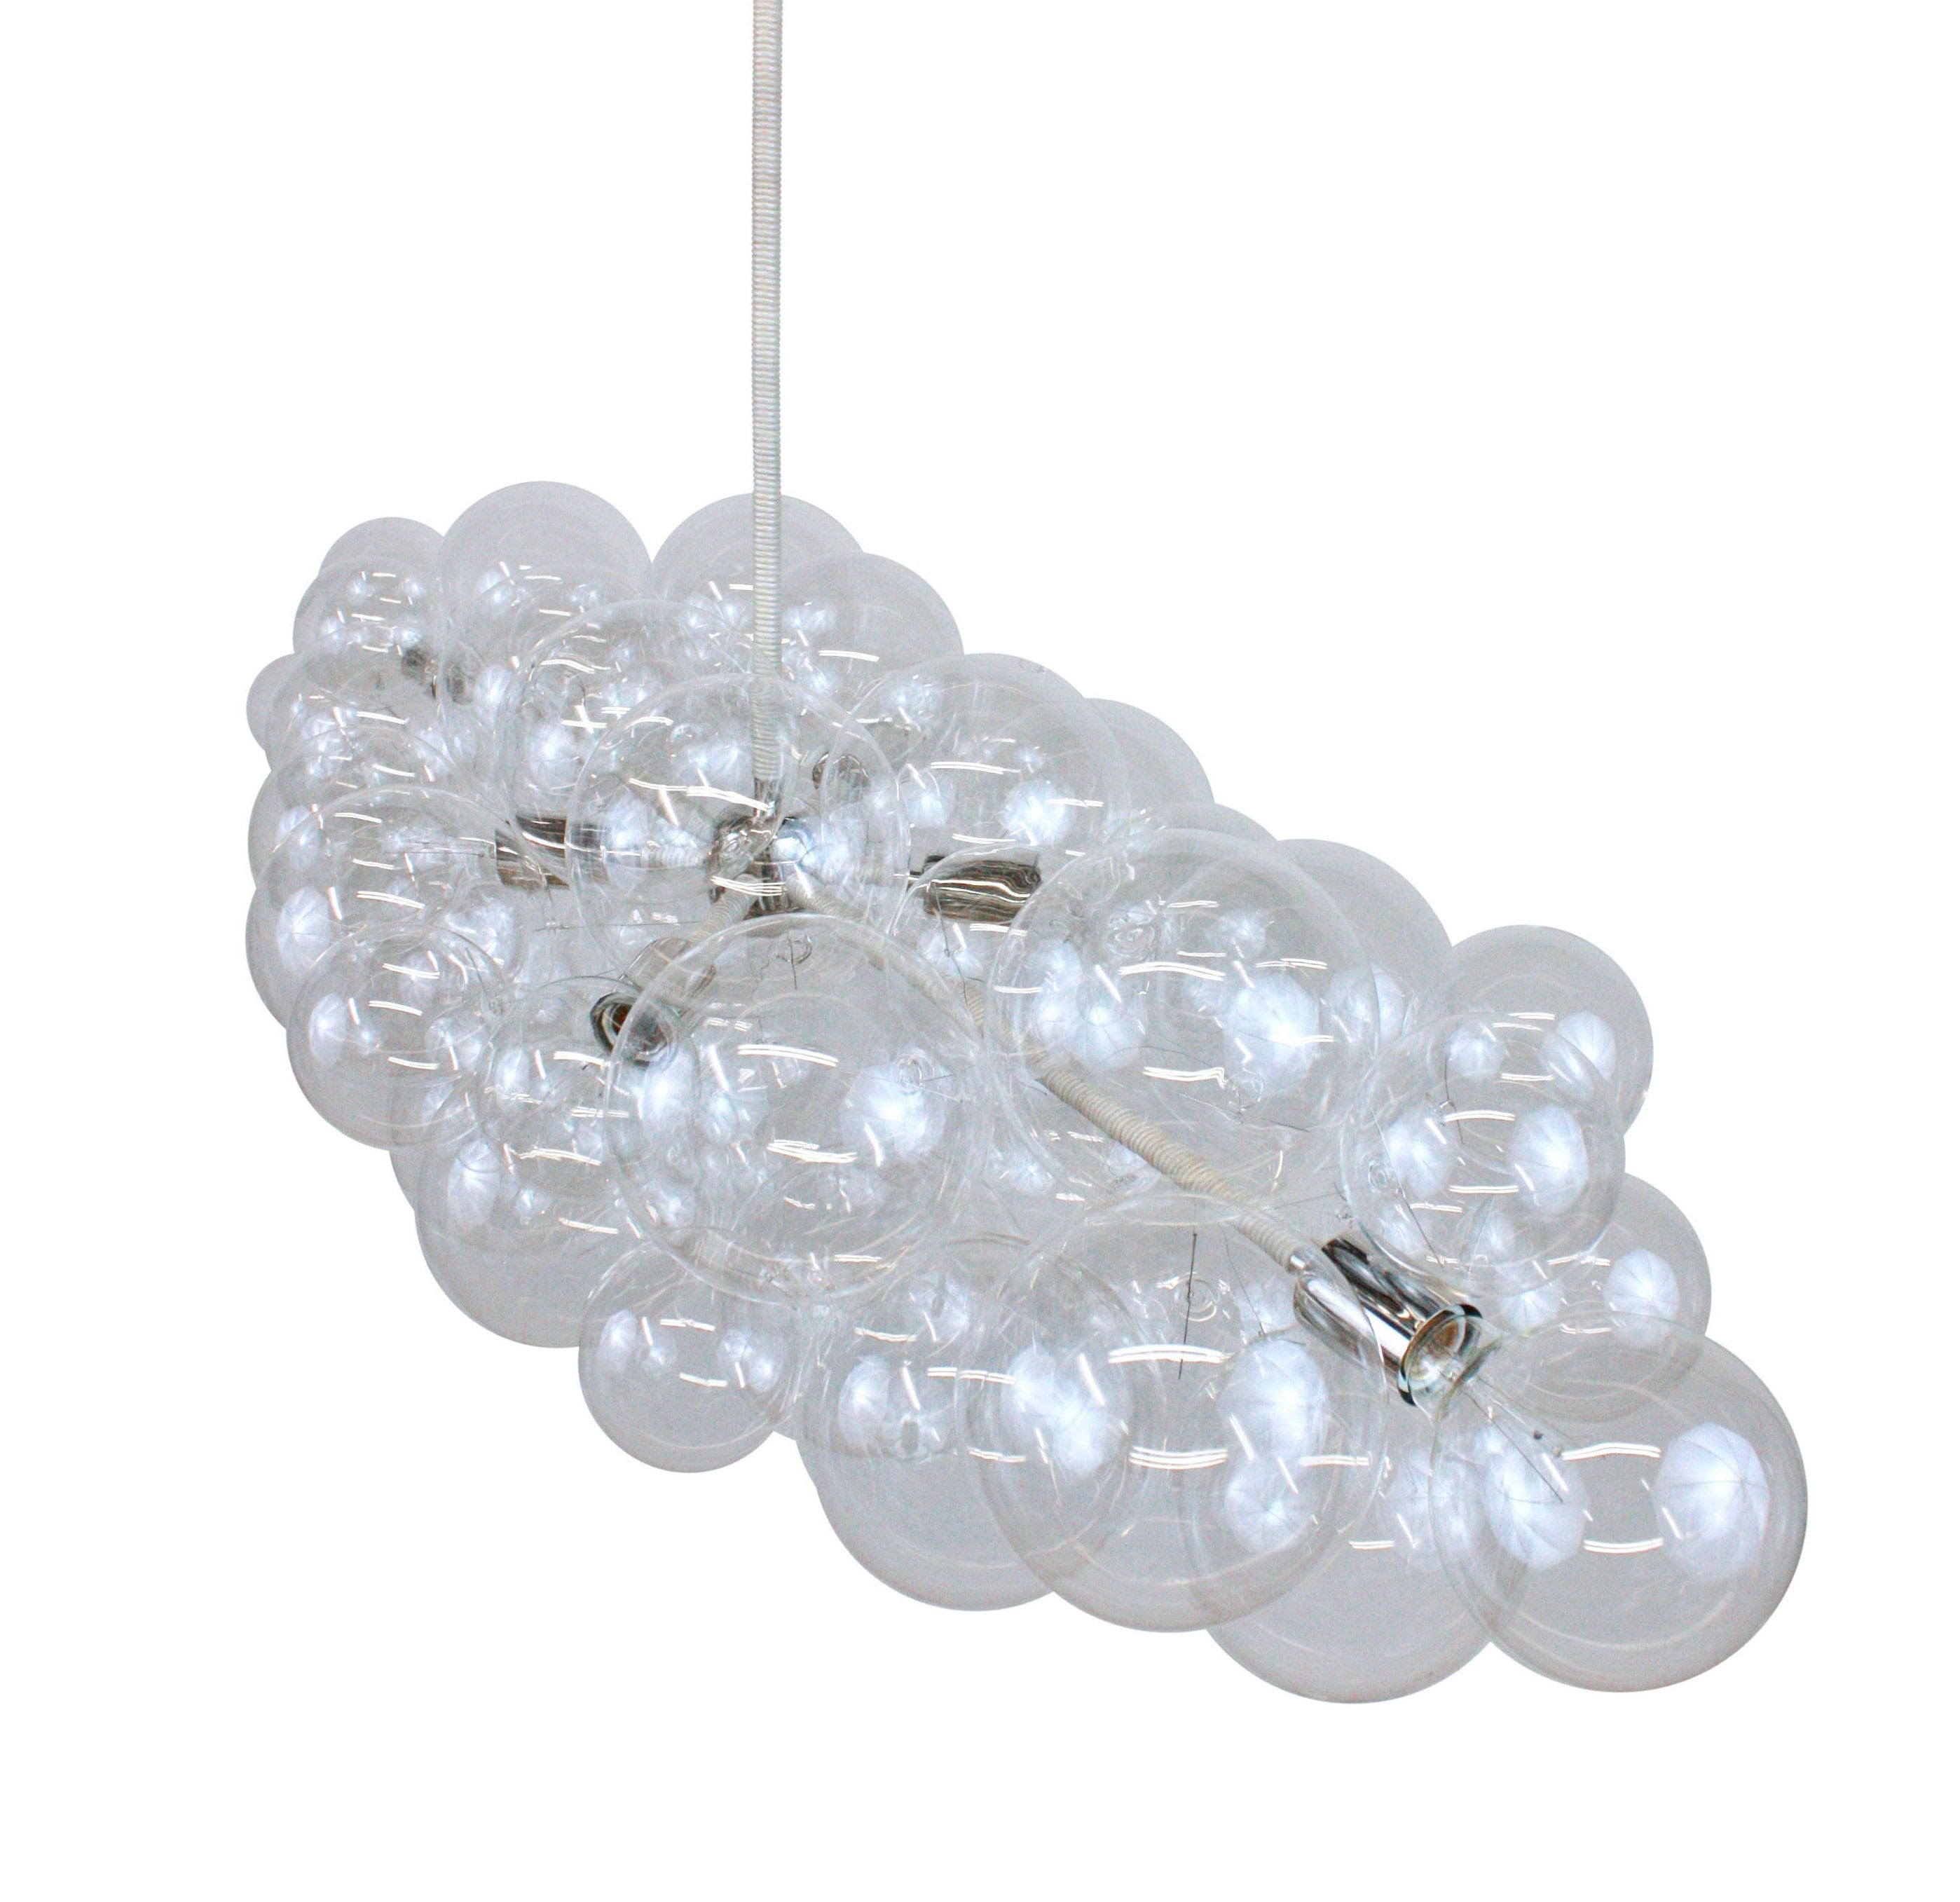 The Polished Nickel Branch Bubble Chandelier 48 long